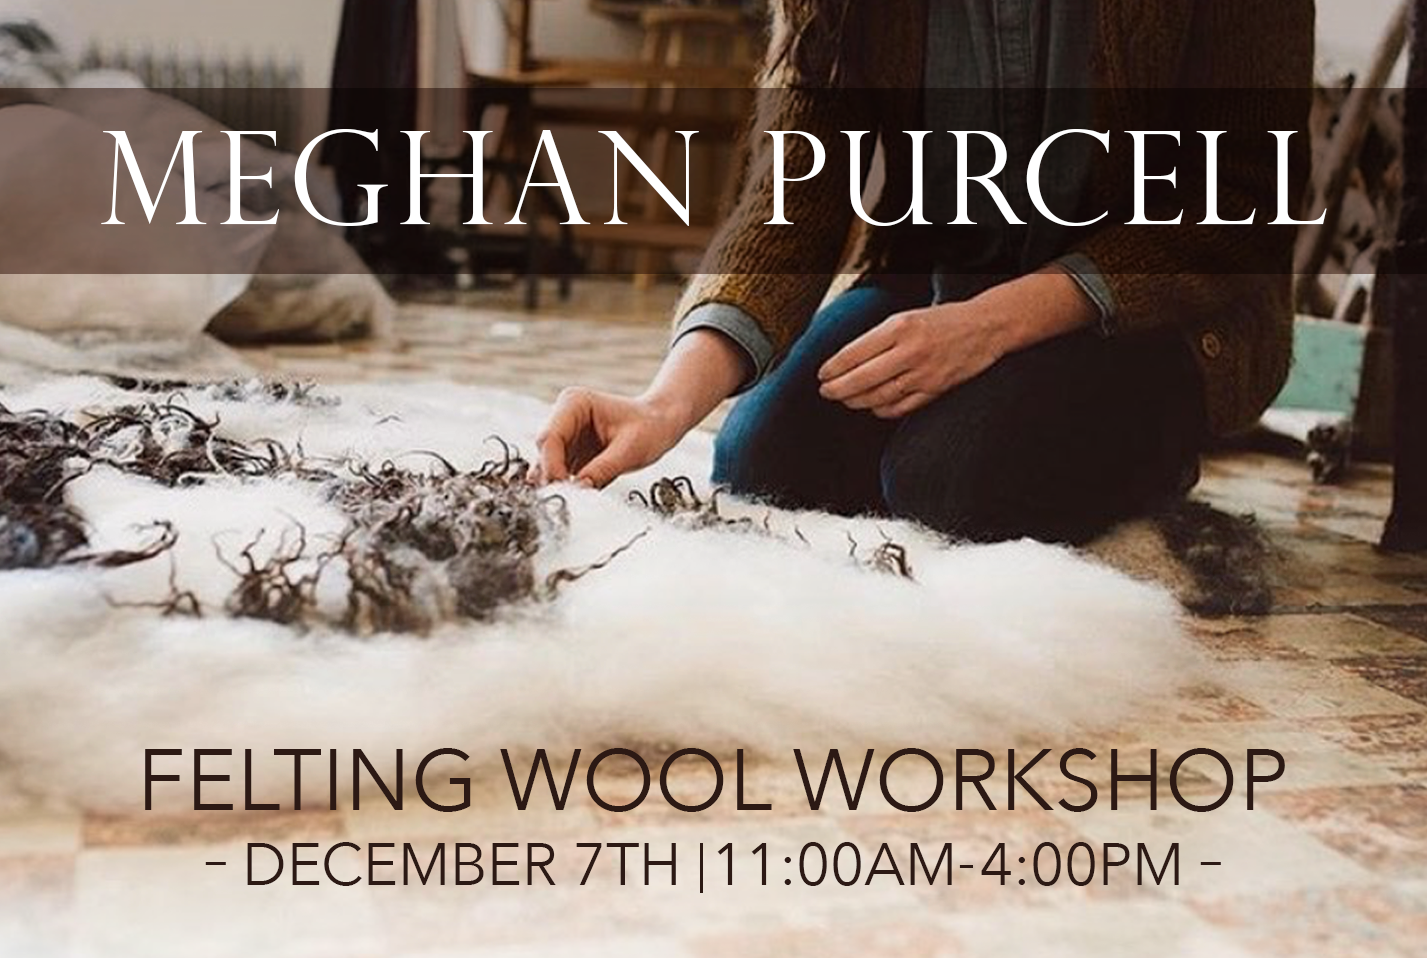 Meghan Purcell - Felting Wool Workshop 2019